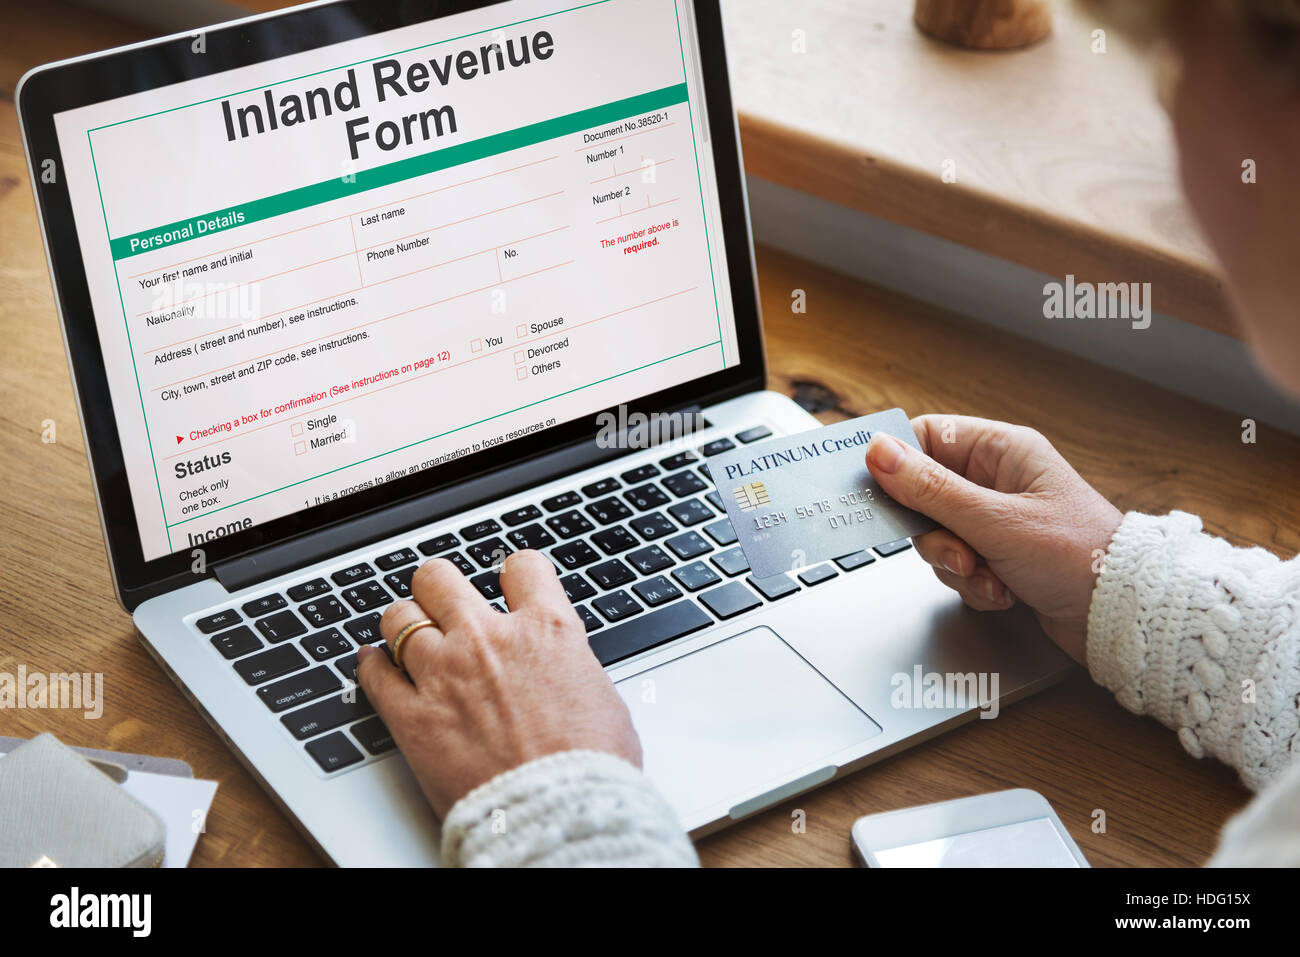 Inland Revenue Form Details Concept - Stock Image